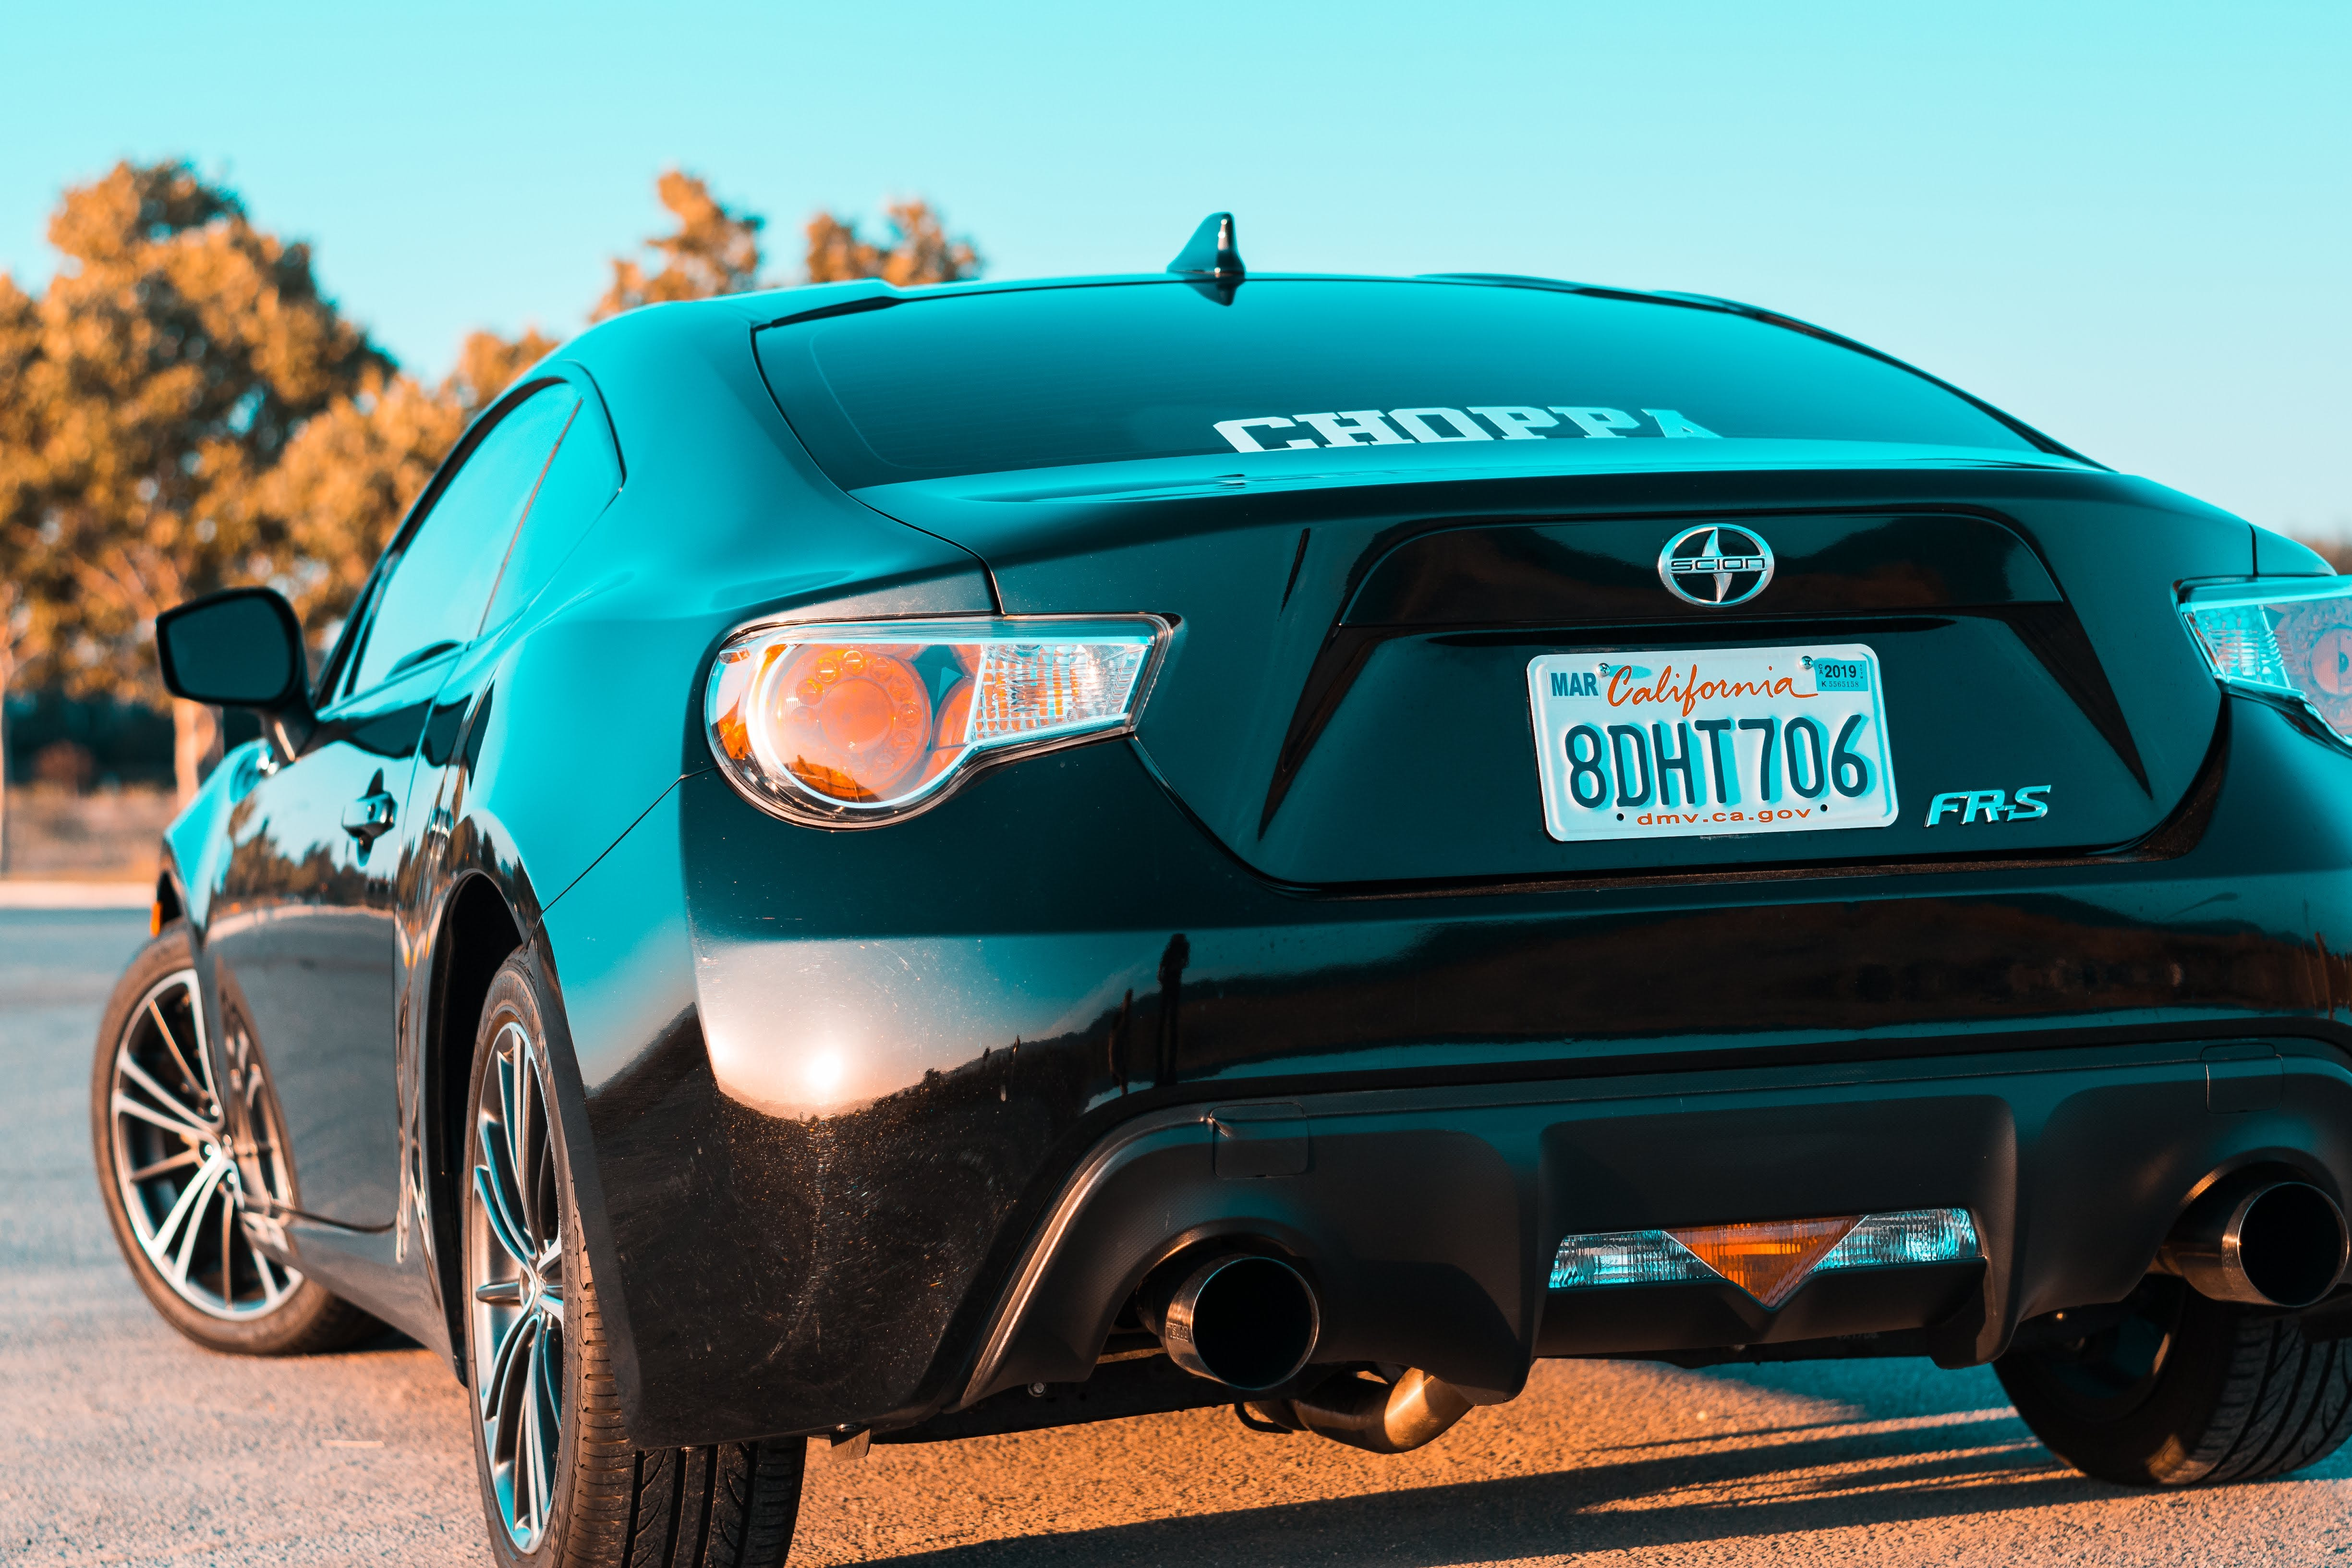 Free stock photo of cars, frs